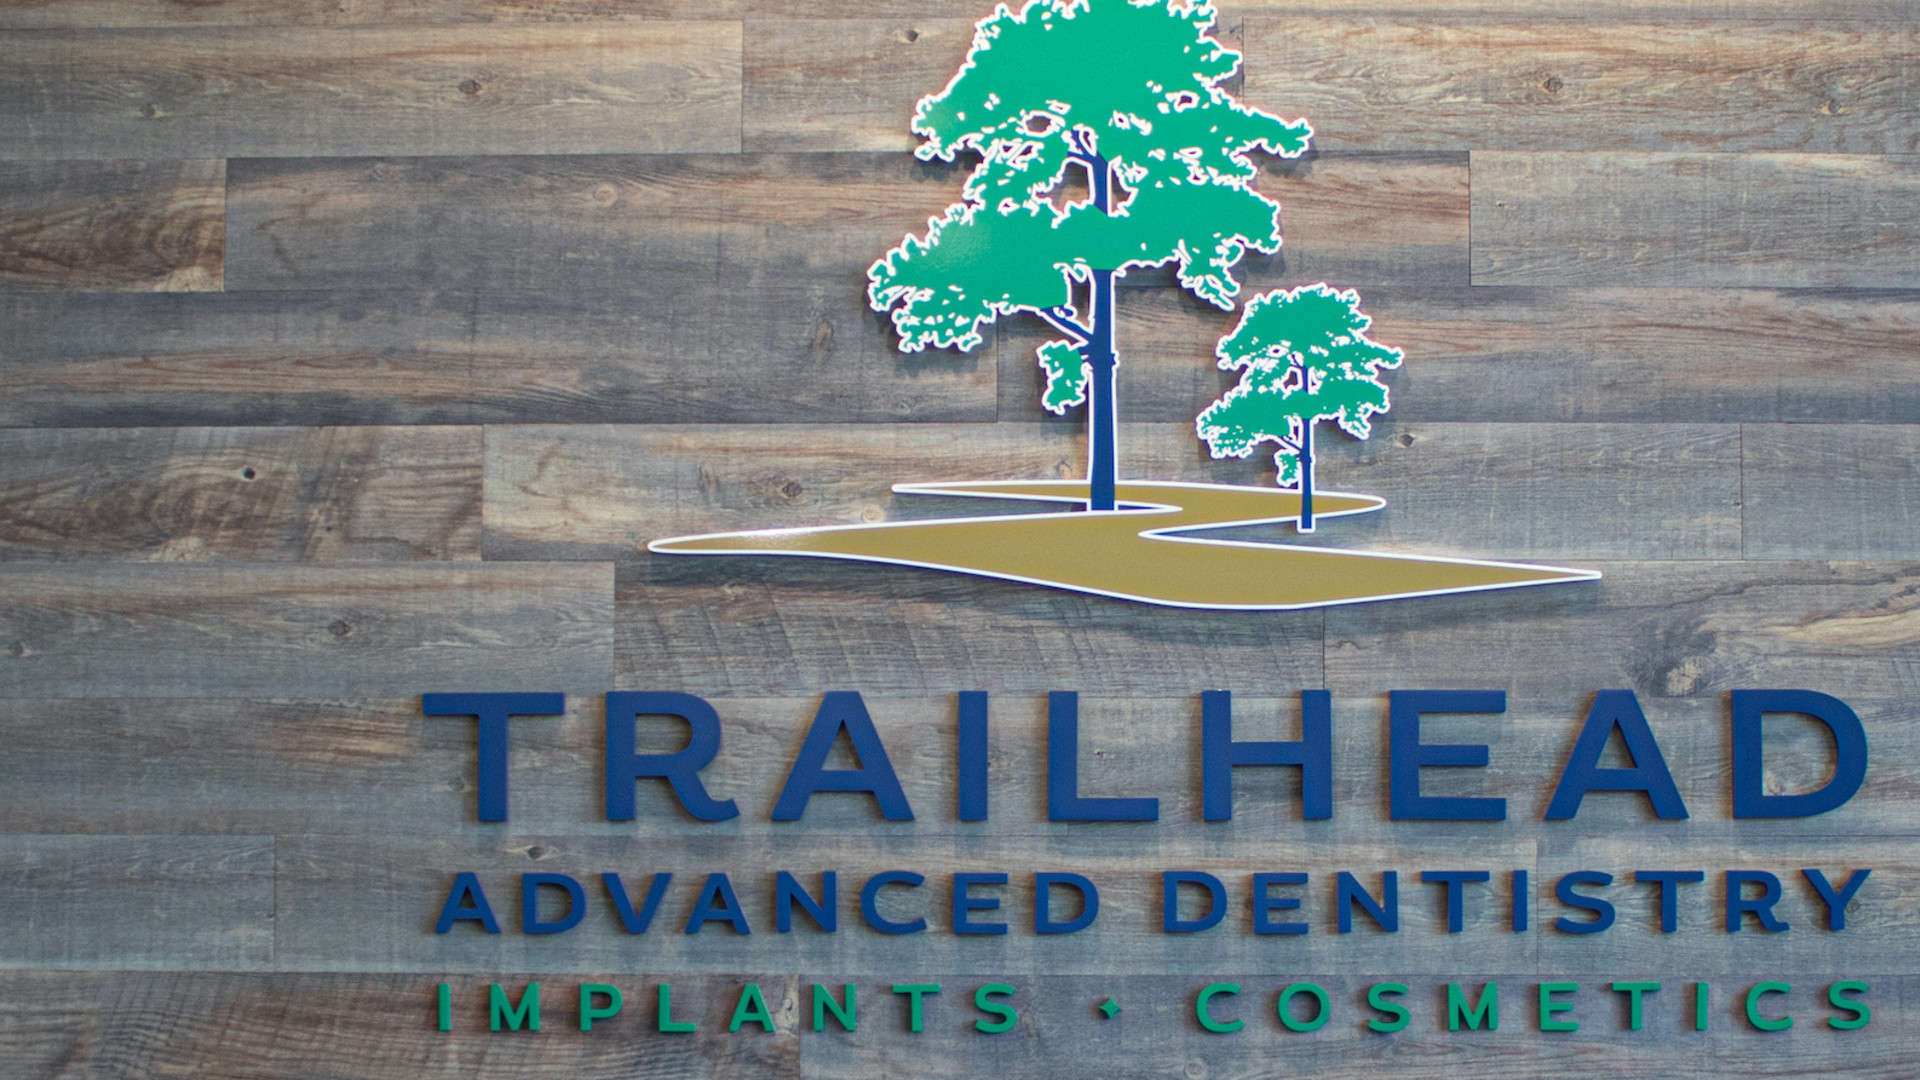 """<style> v {   text-shadow: 2px 2px 8px #1d4664; } </style><span style=""""color:white""""><v>Visit Trailhead Advanced Dentistry for All Your Dental Needs</v></span>"""